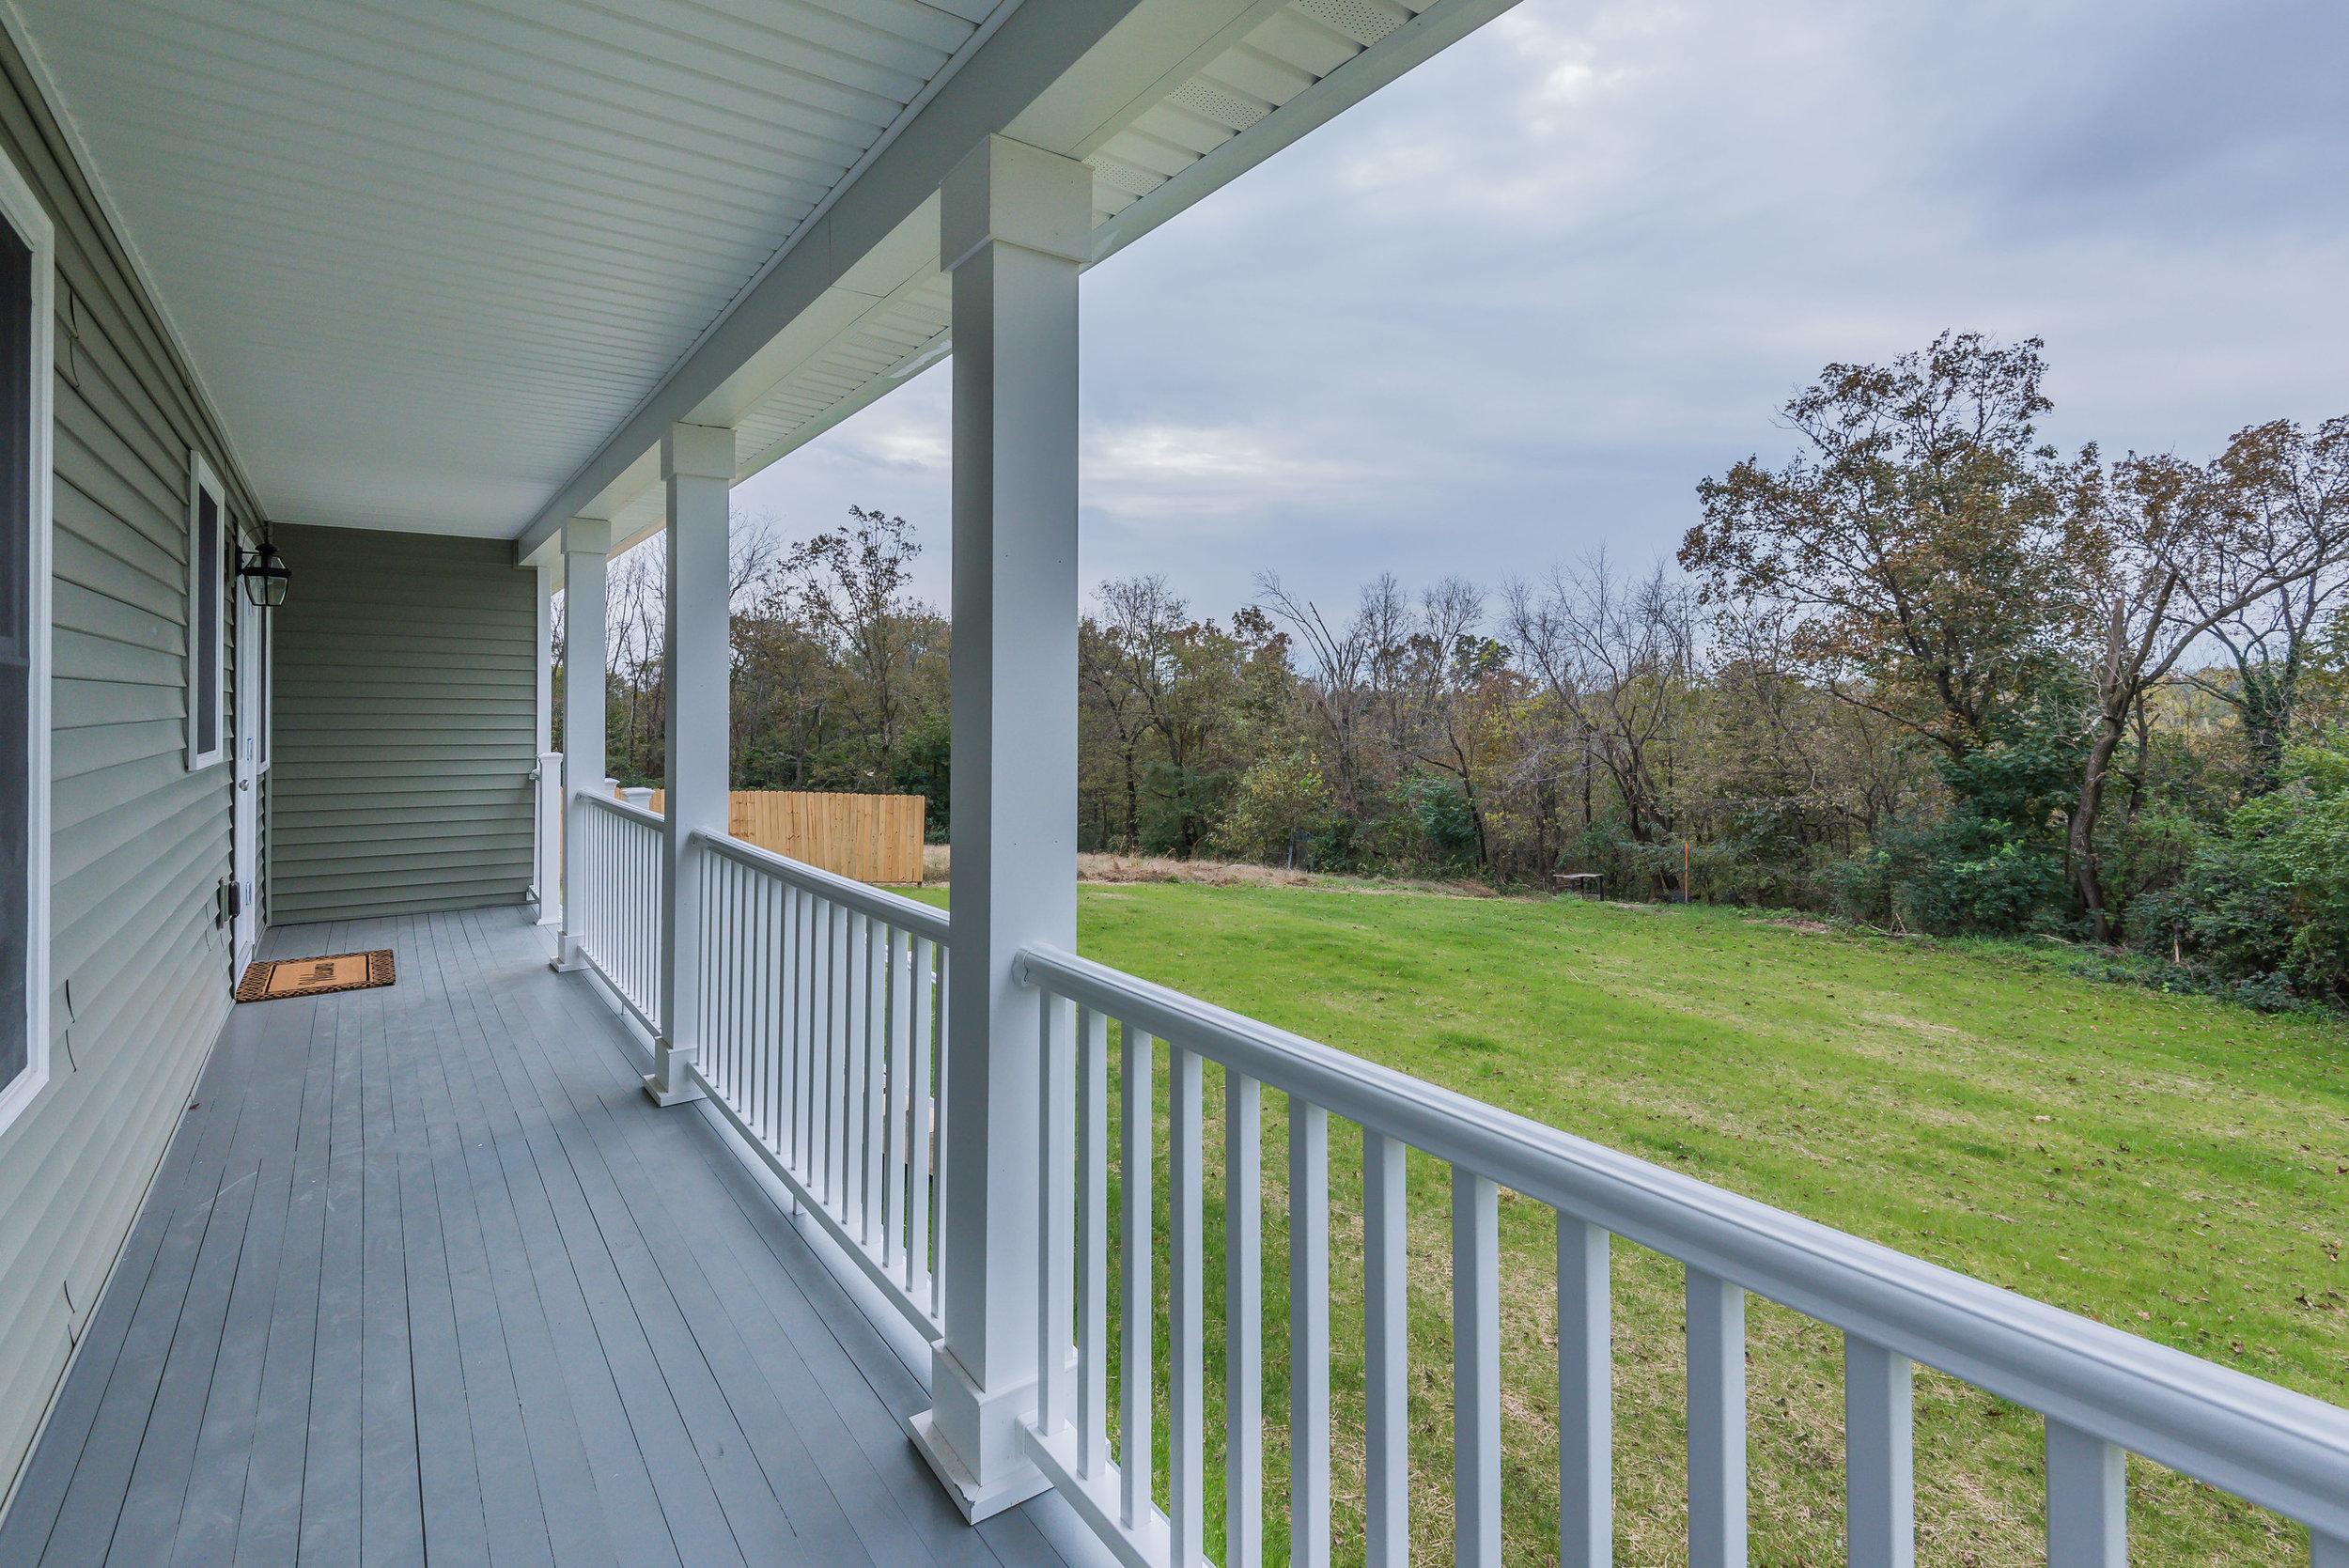 porch_view_1_of_1_-2.jpg